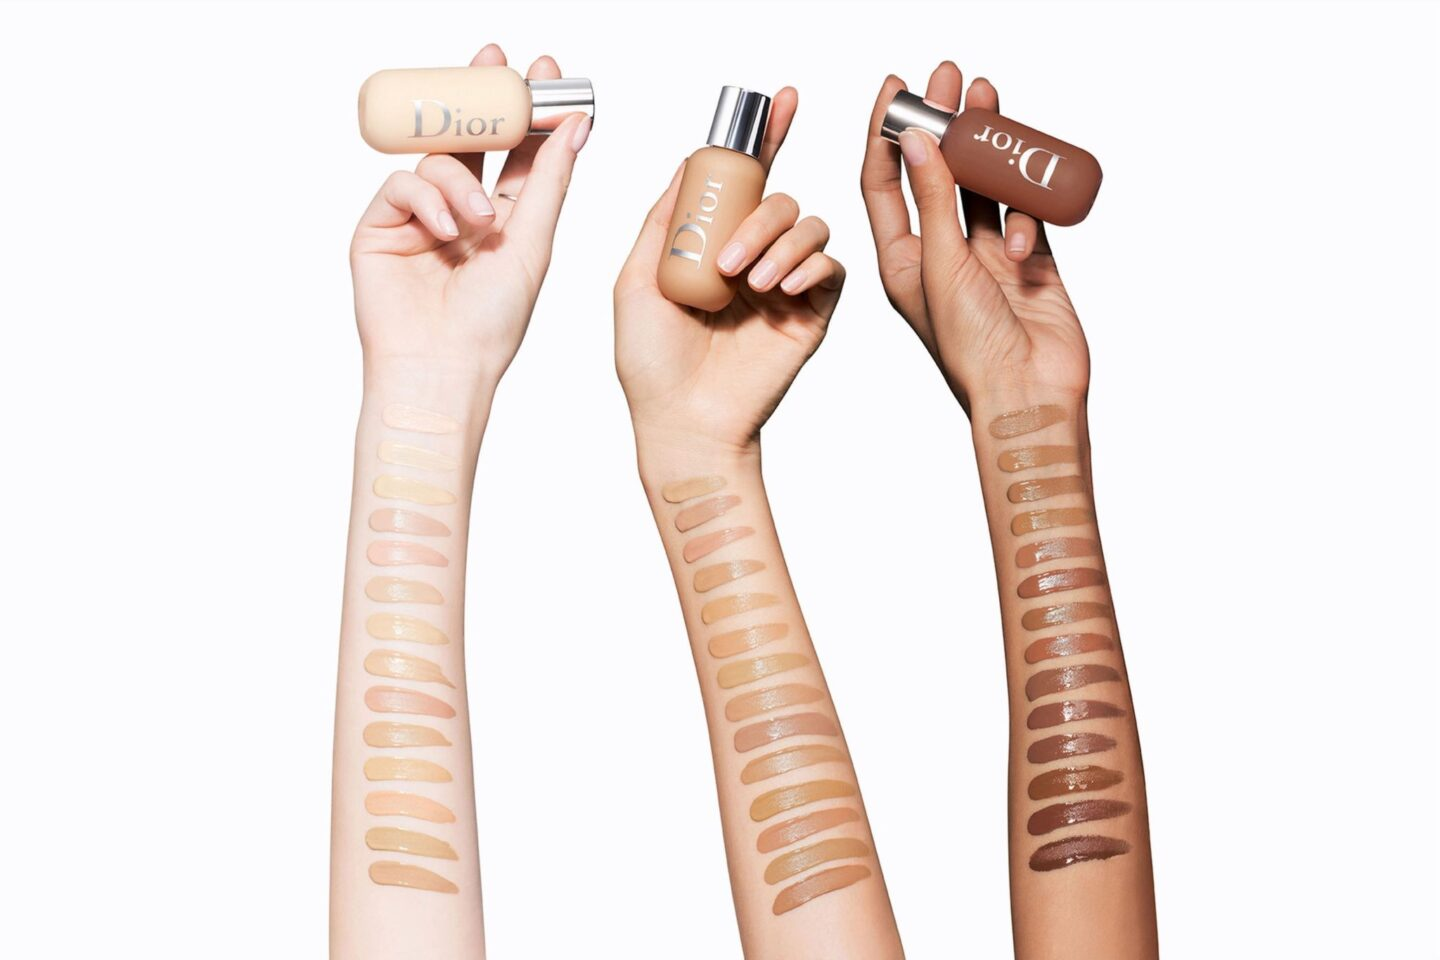 DIOR Backstage Foundation Swatches